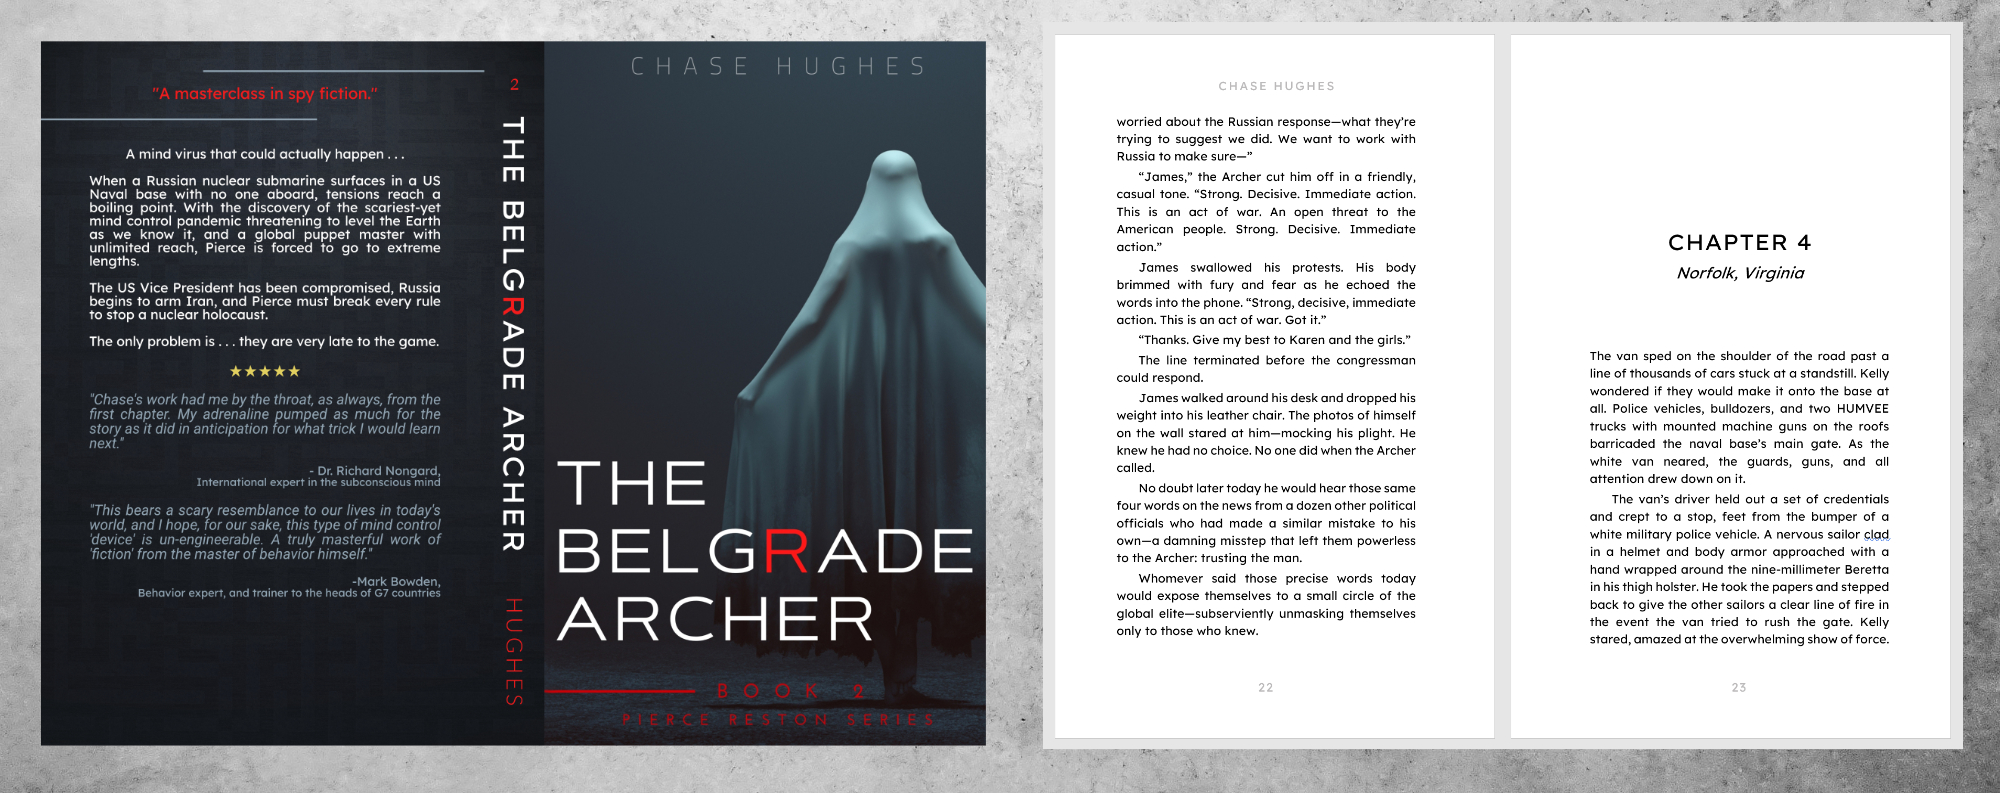 Example image of book The Belgrade Archer by Chase Hughes